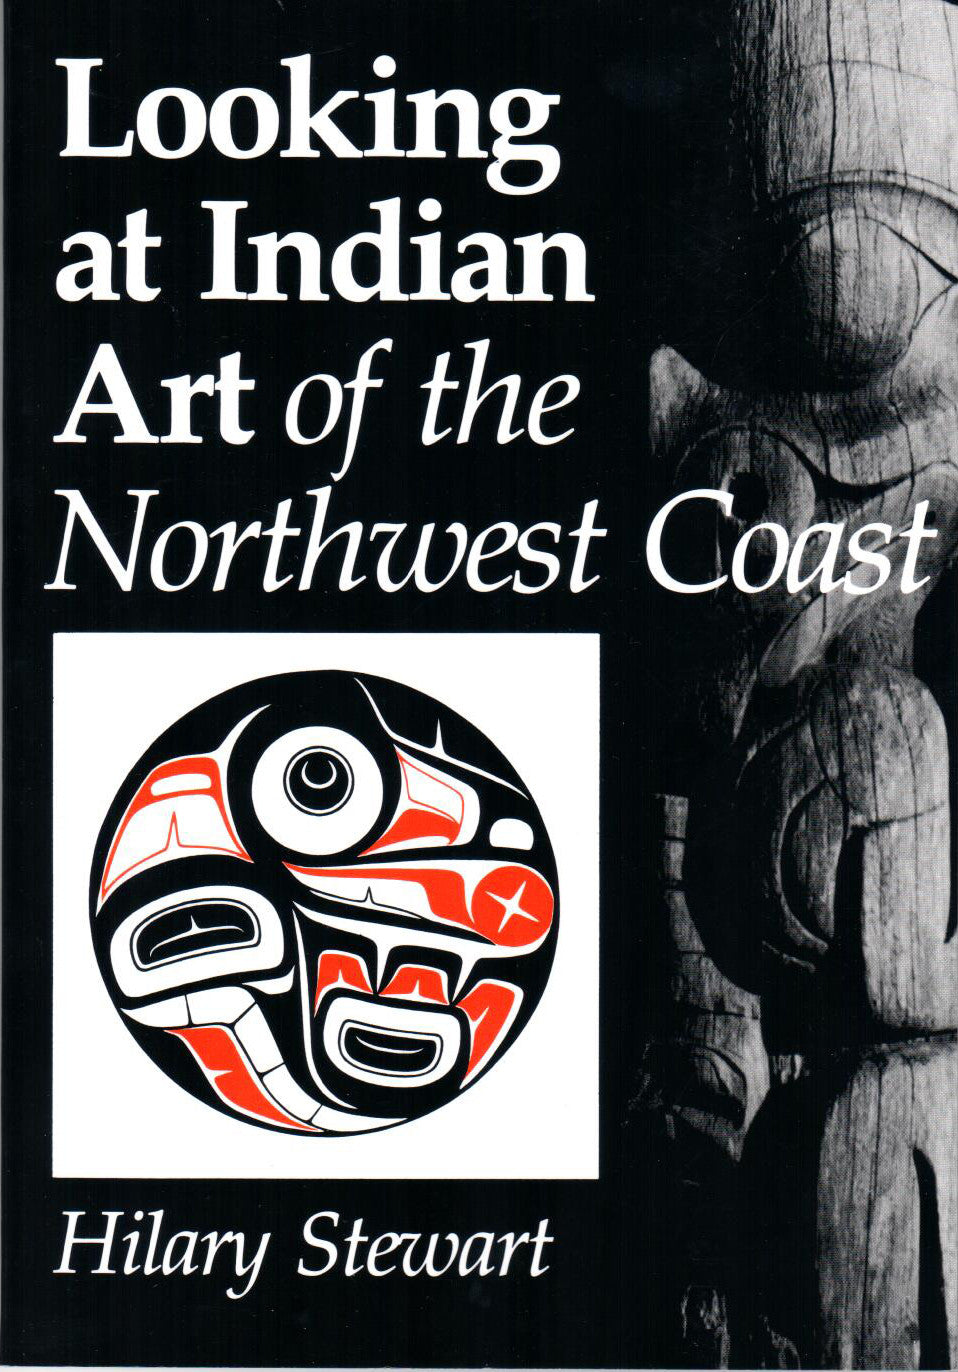 Looking at Indian Art of the Northwest Coast by Hilary Stewart - Washington State Historical Society